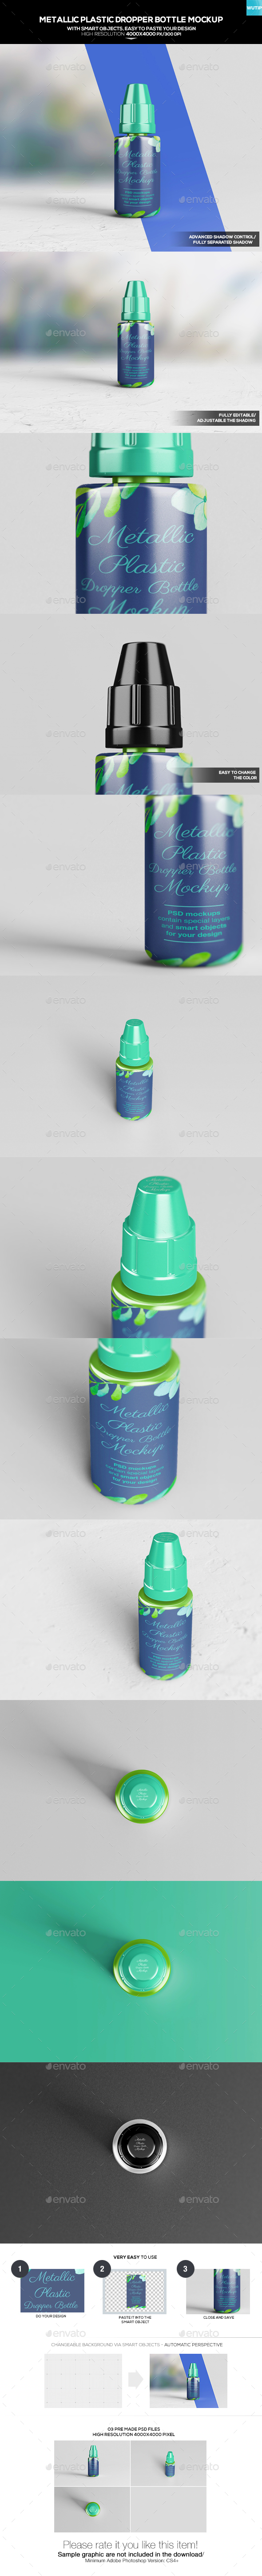 Metallic Plastic Dropper Bottle Mockup - Miscellaneous Packaging